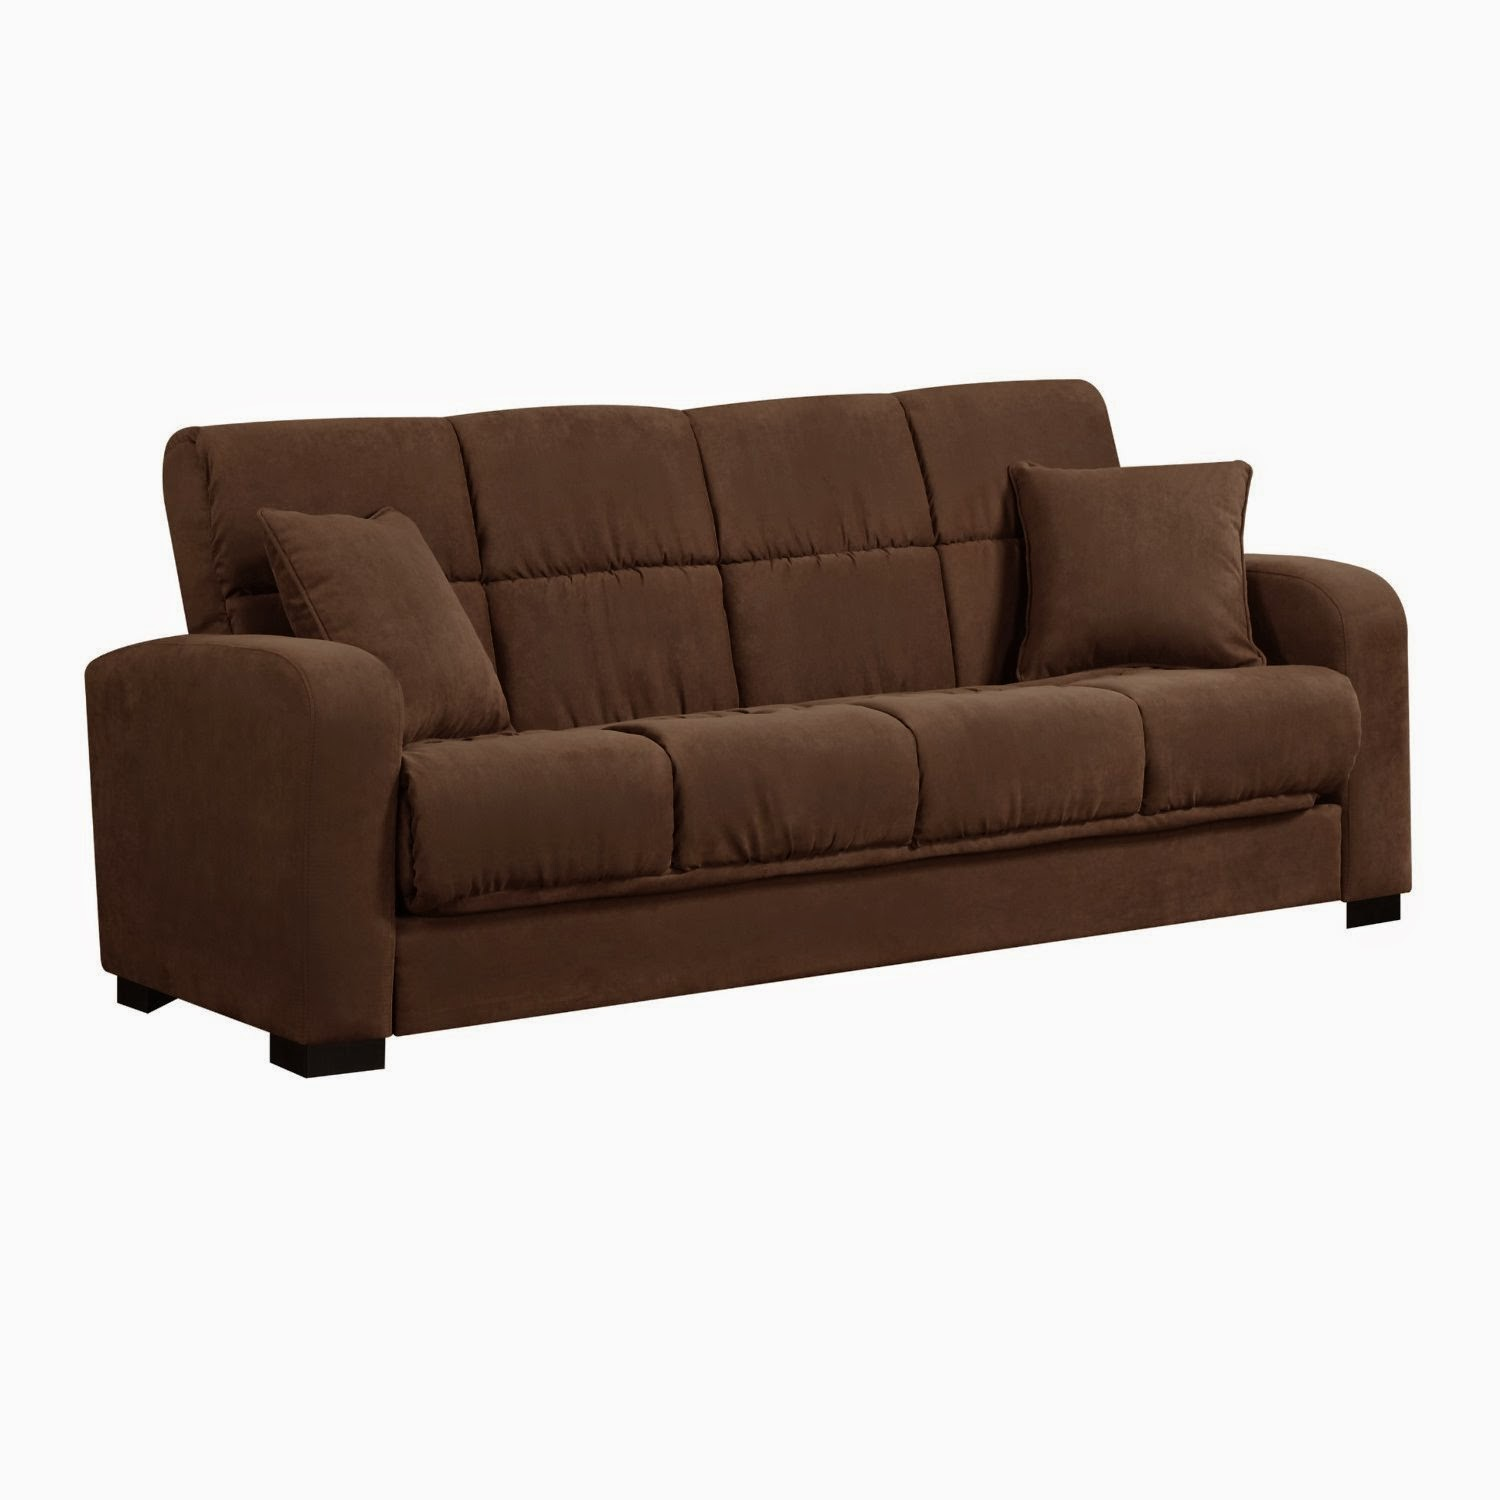 Bed Sofas For Sale